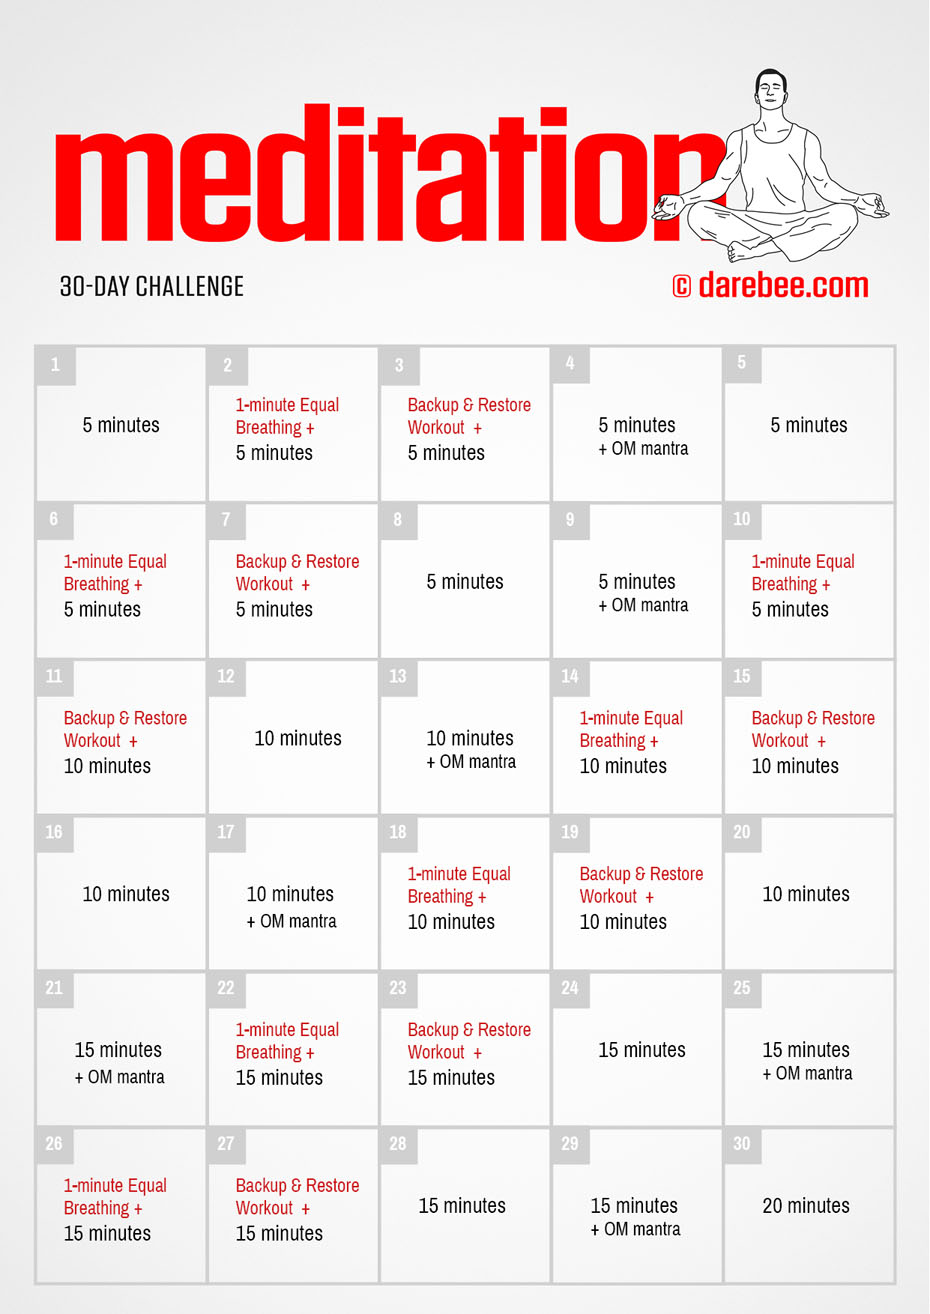 30-Day Meditation Challenge by DAREBEE